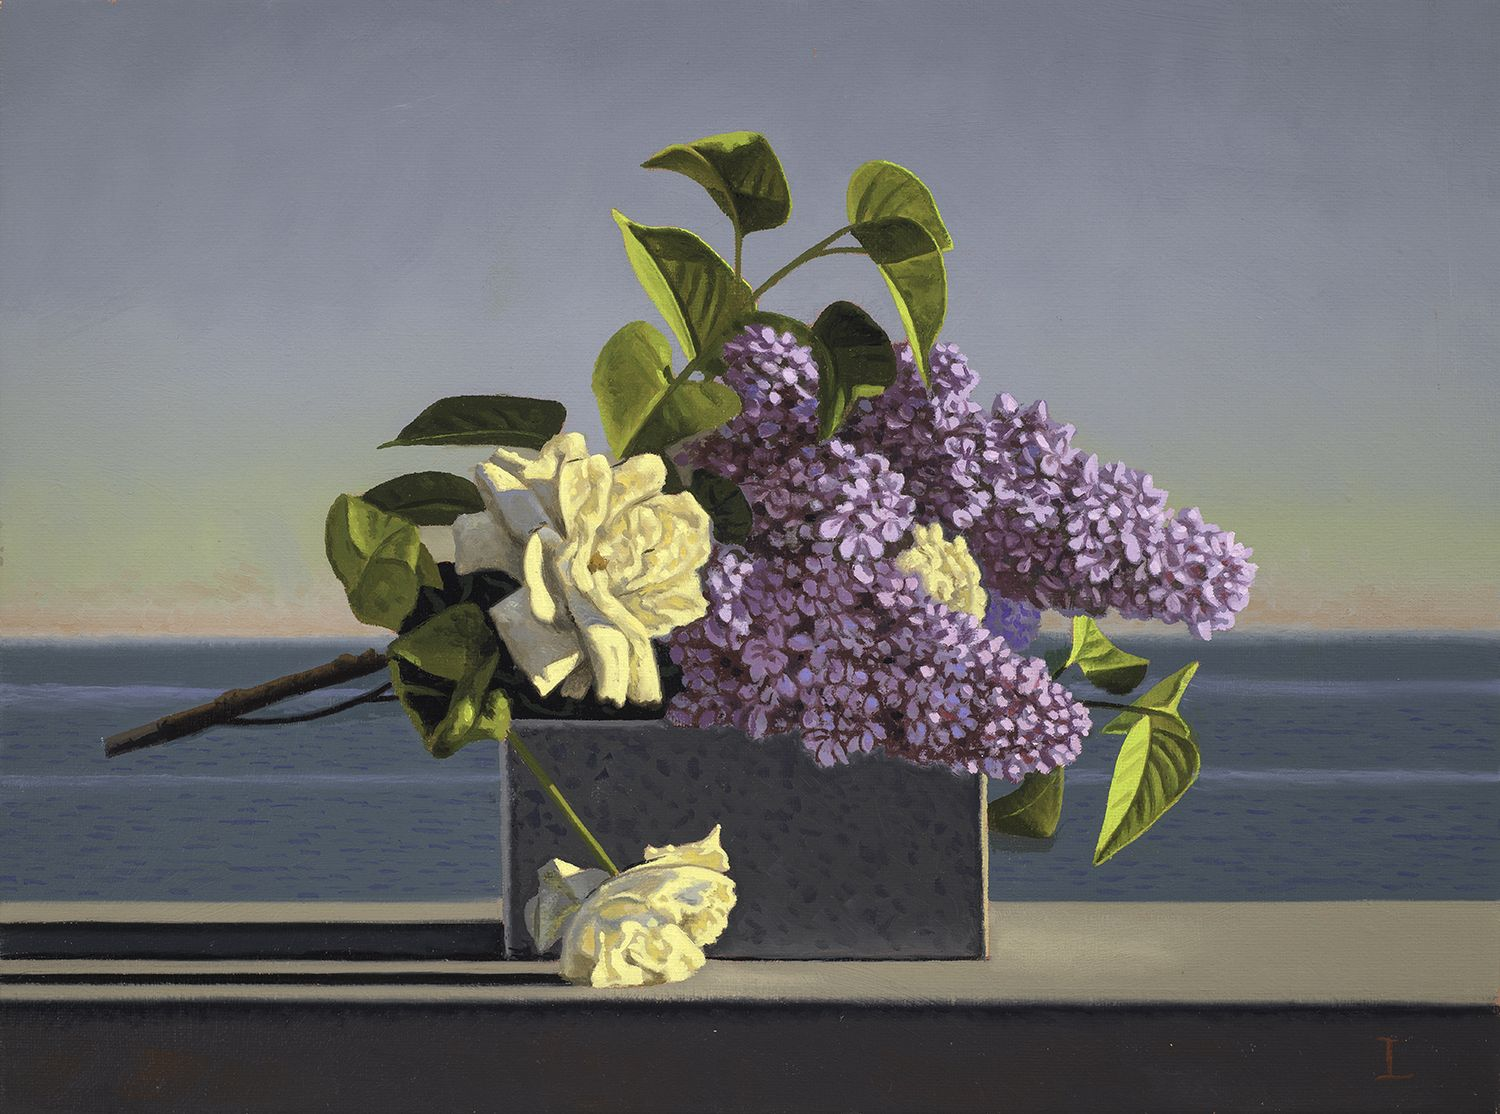 David Ligare (b. 1945), Still Life with Lilacs and Roses, 2018